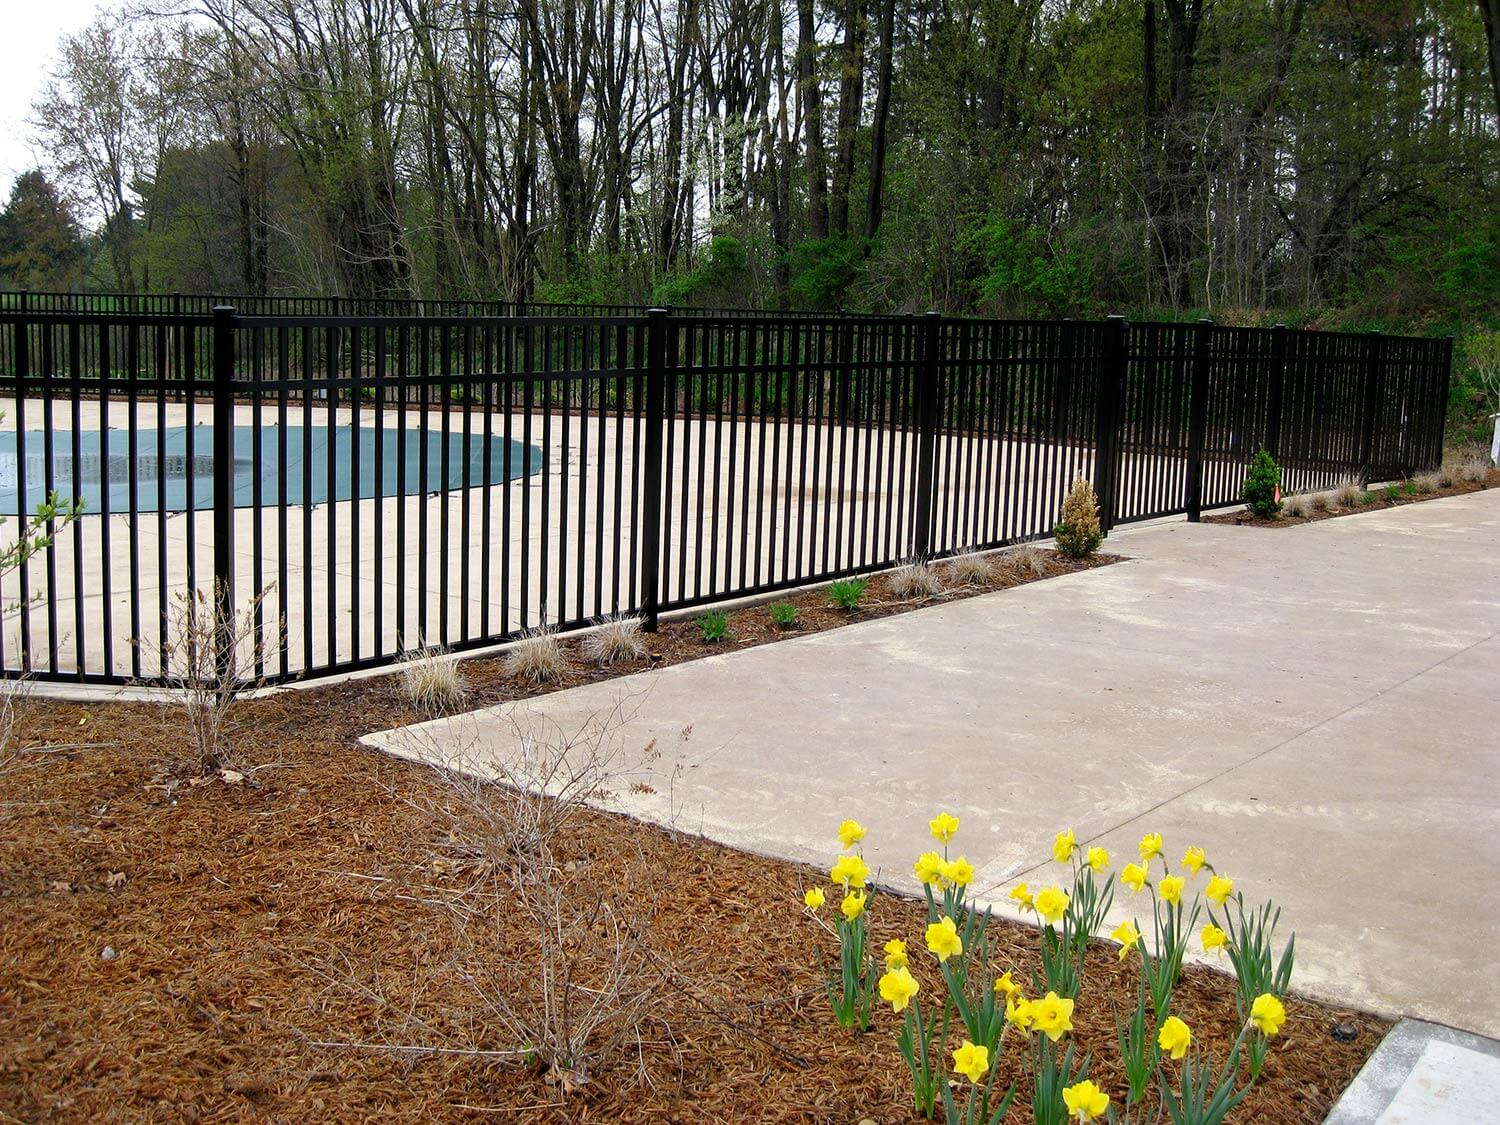 Buy Aluminum Fence Online | Aluminum Fencing & Supplies |